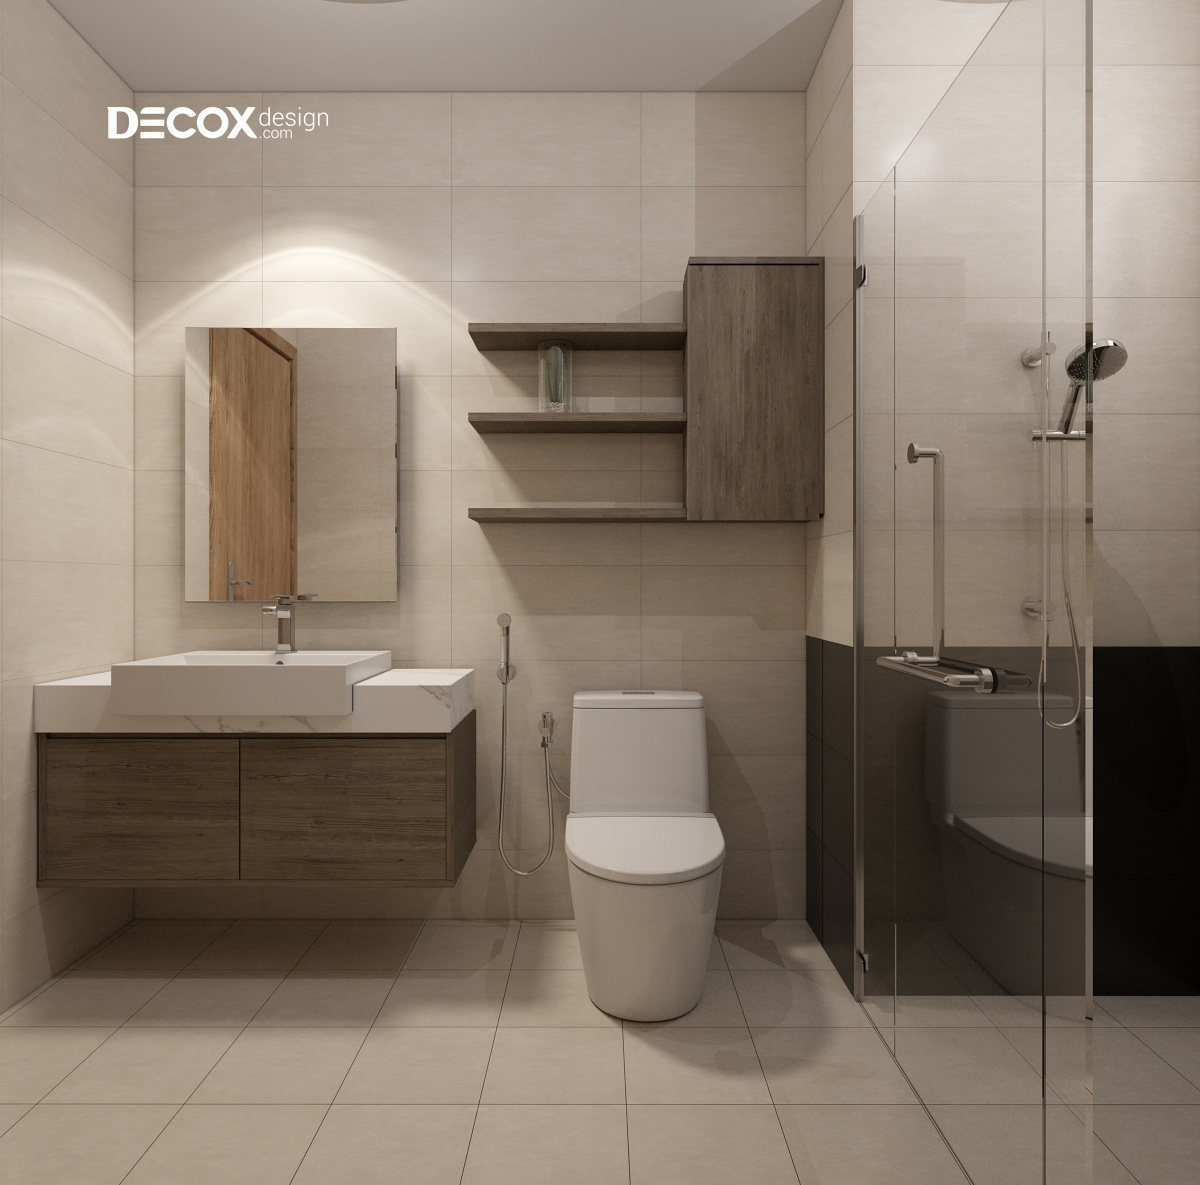 thiet-ke-noi-that-the-sun-avenue-100m2-de180125-wc-master-15-decox-design